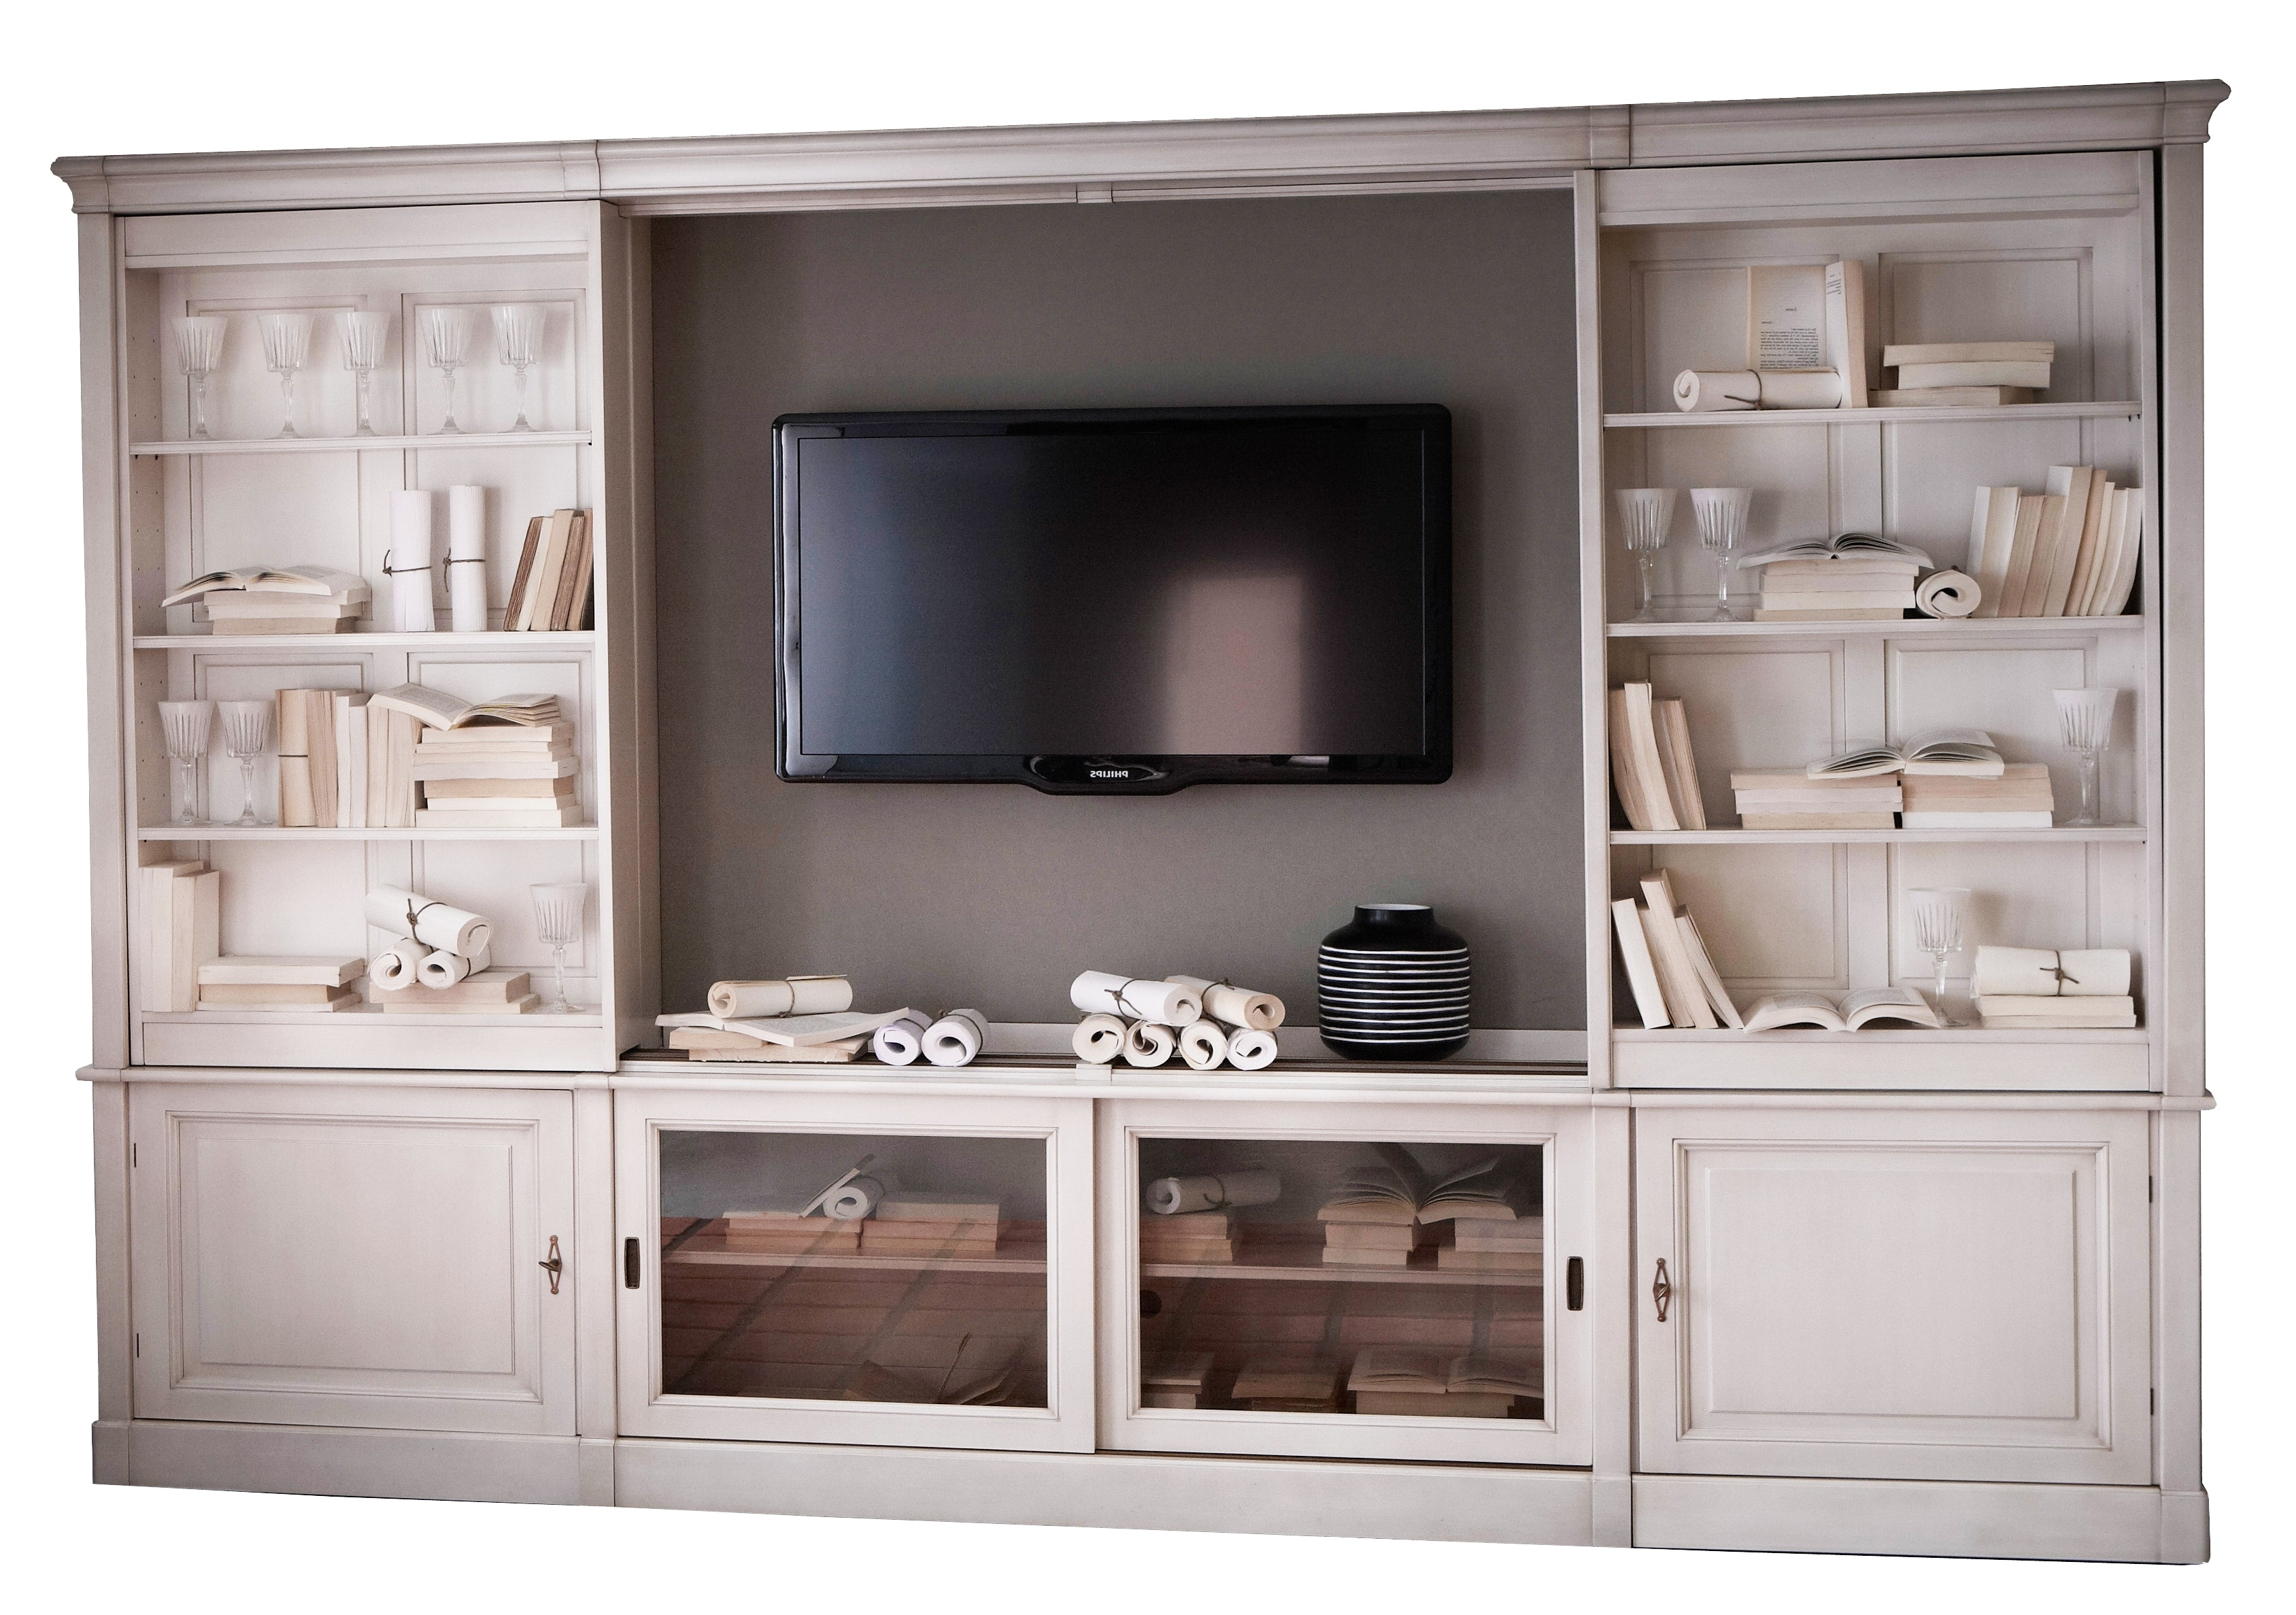 Widely Used Tv Book Case For Sliding Tv Bookcase Wall Unit Full Wall Bookshelves Diy High (View 12 of 15)